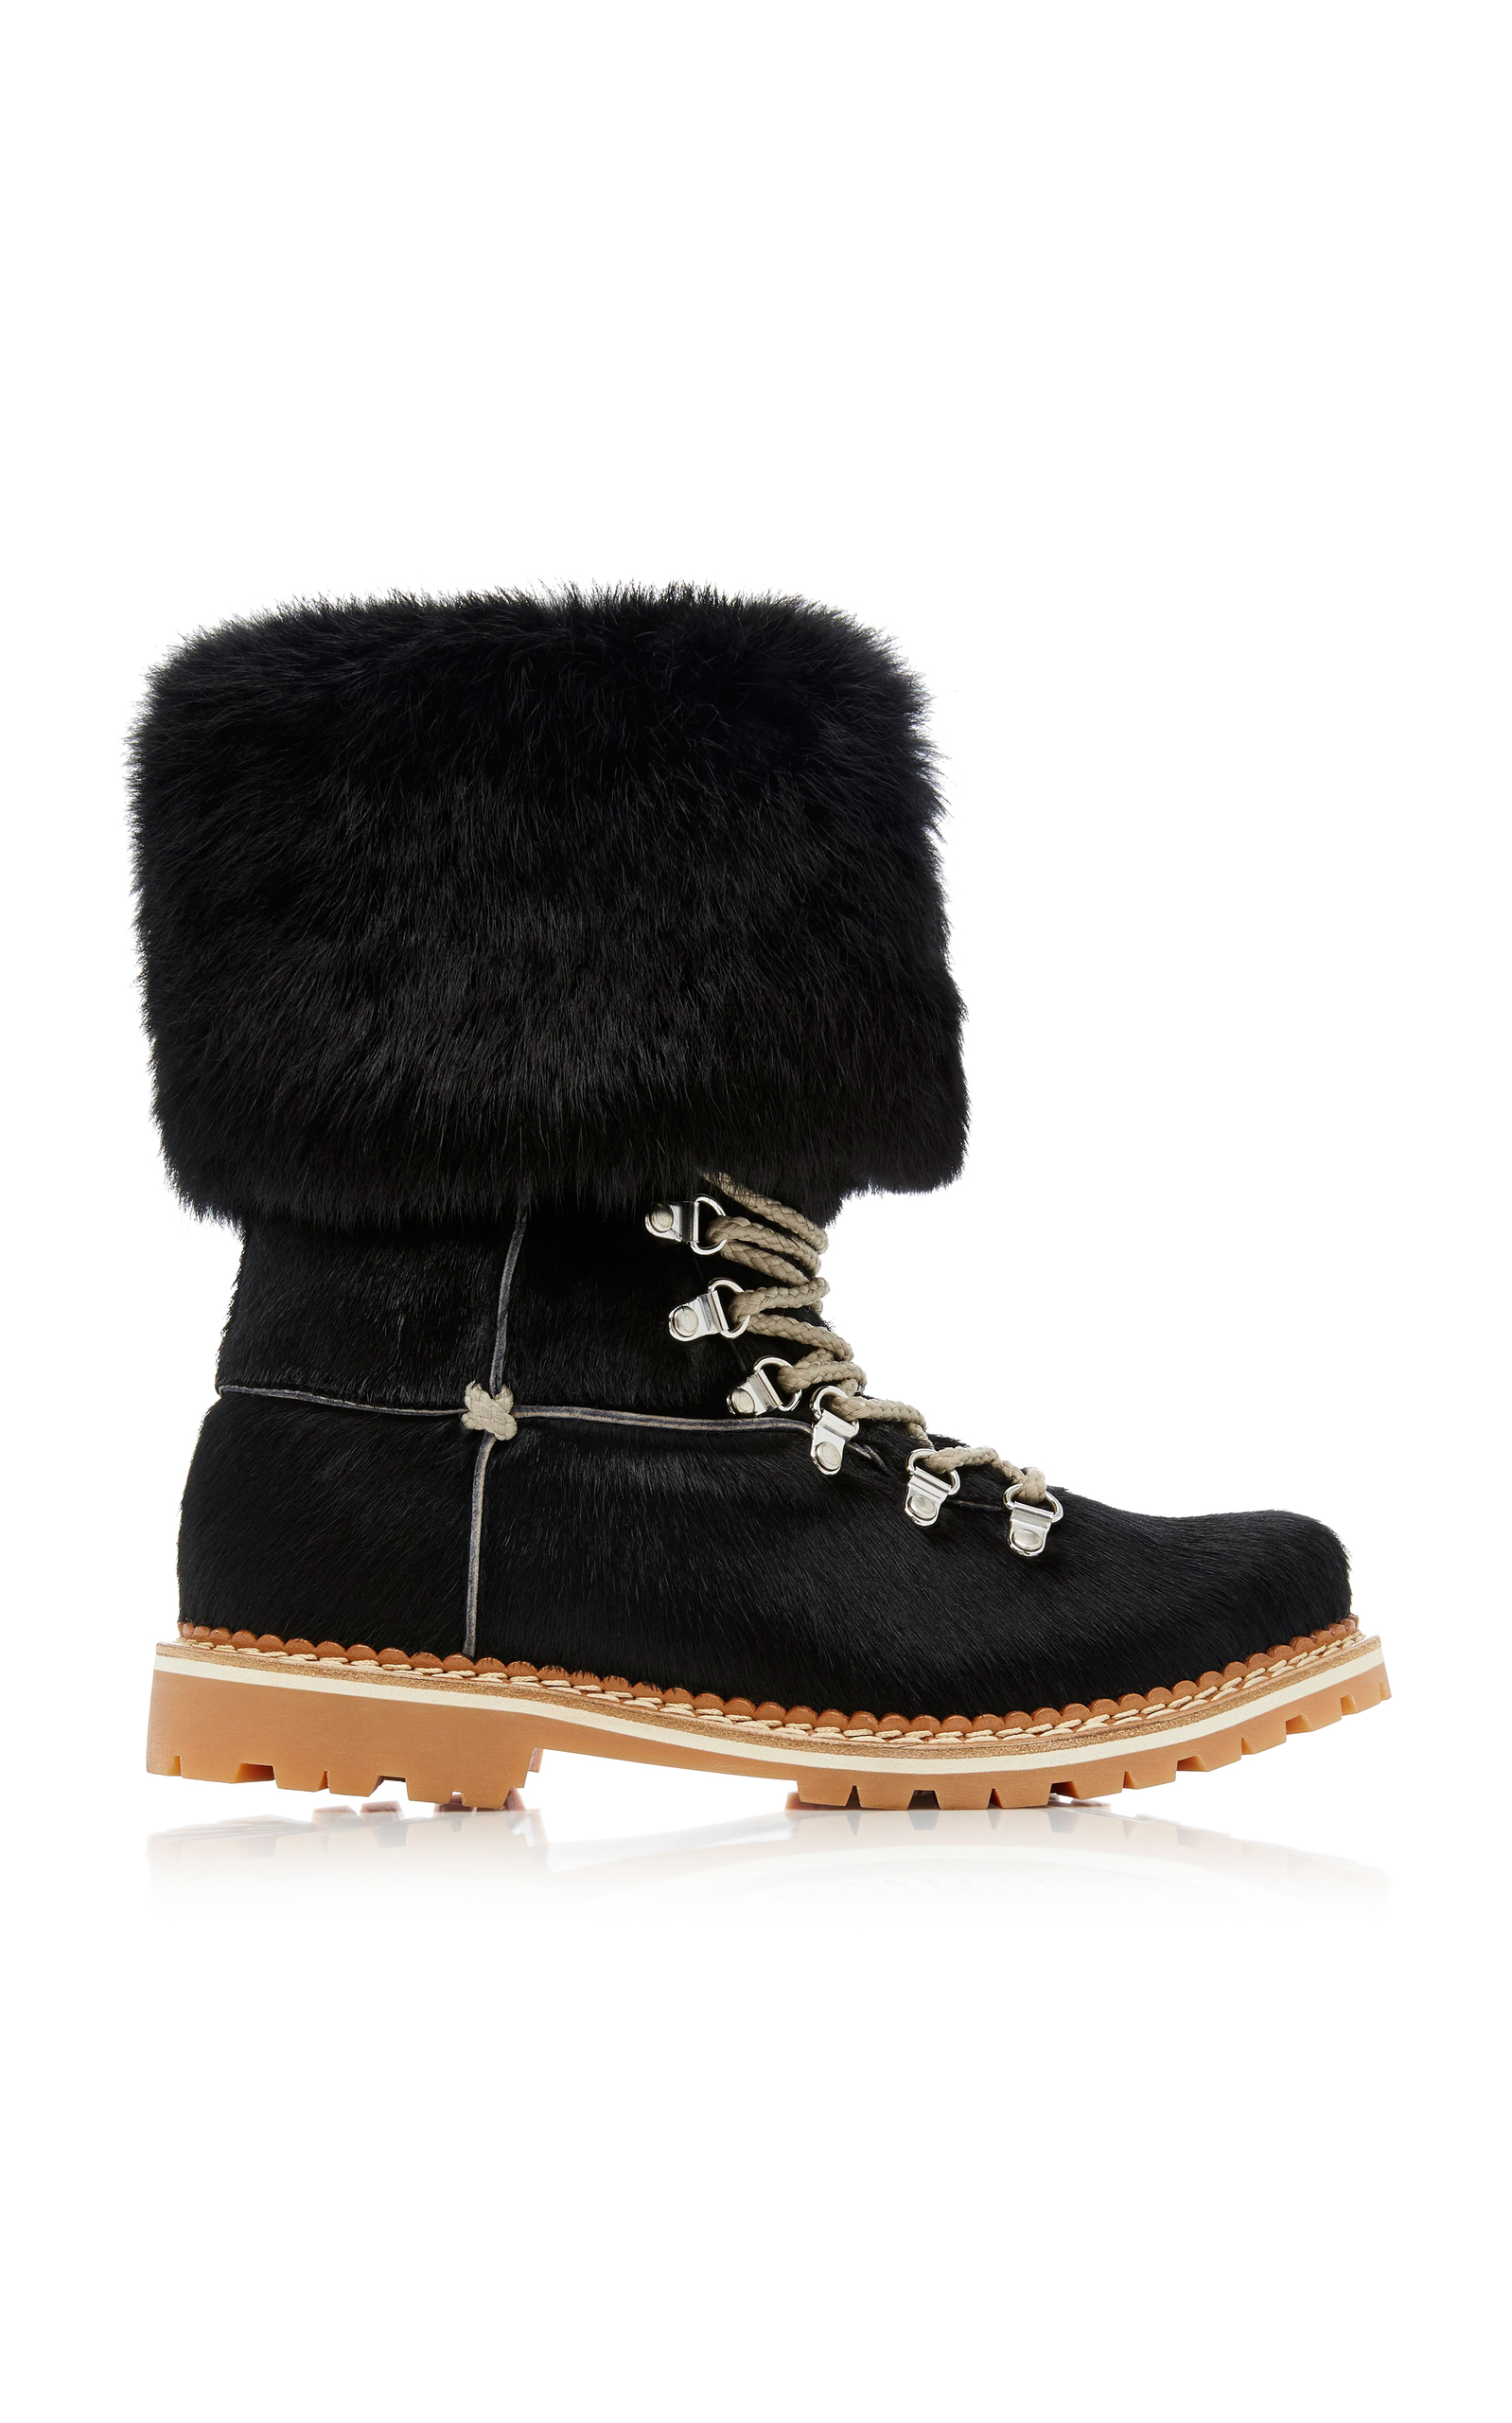 Fur-Trimmed Suede Lace-Up Boots Montelliana Cheap Sale Real Low Price Fee Shipping Cheap Price g9pVuS